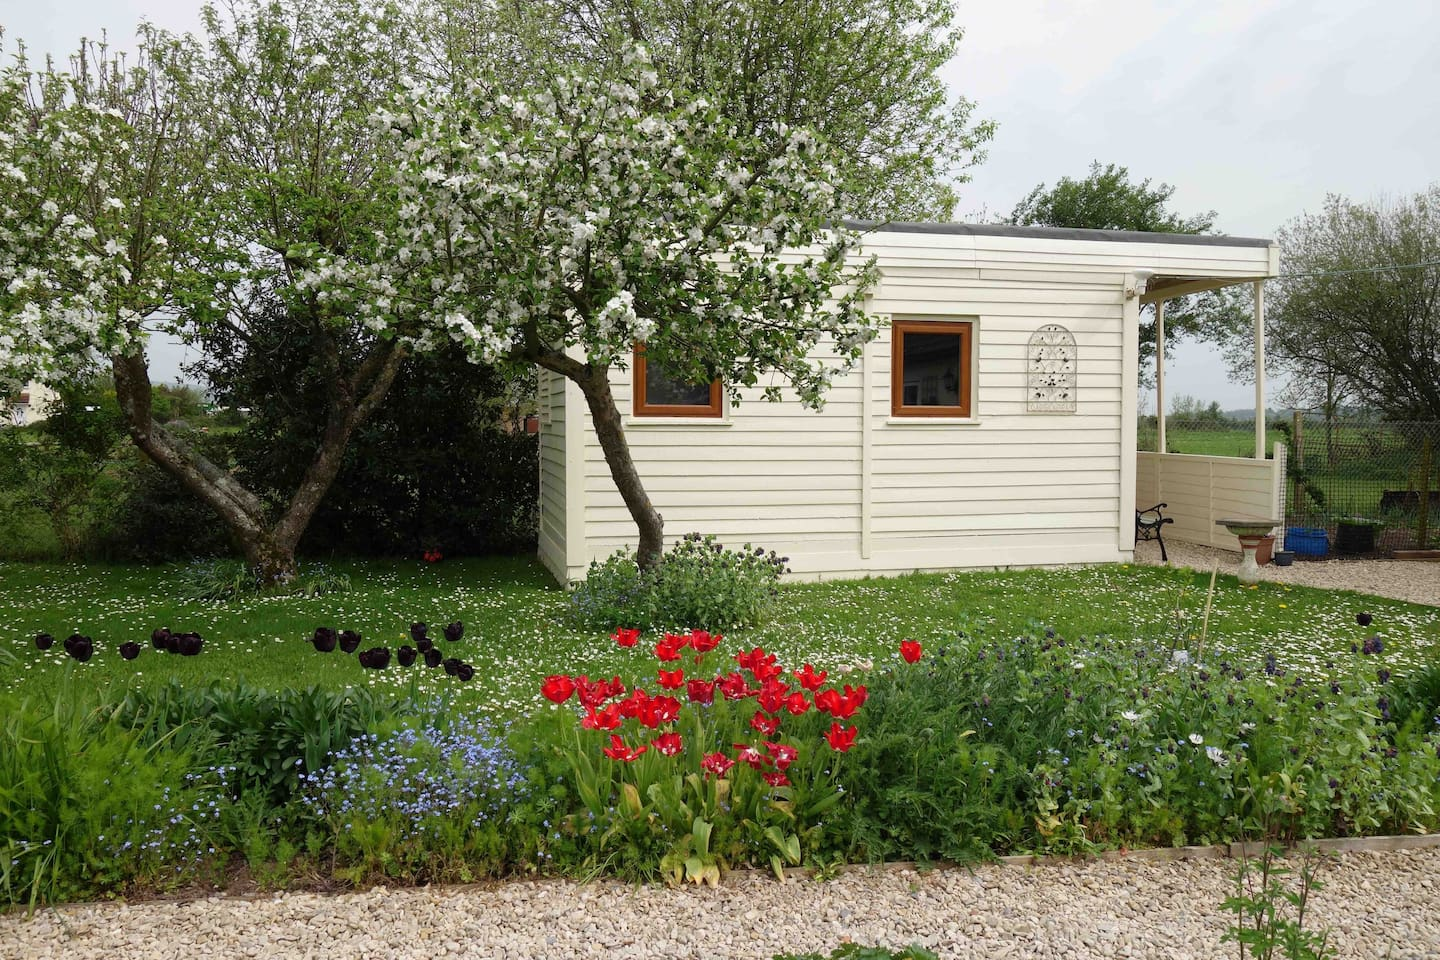 The Cabin is set in part of our garden for you enjoy the peaceful surroundings (we generally use a separate garden so you can be private)